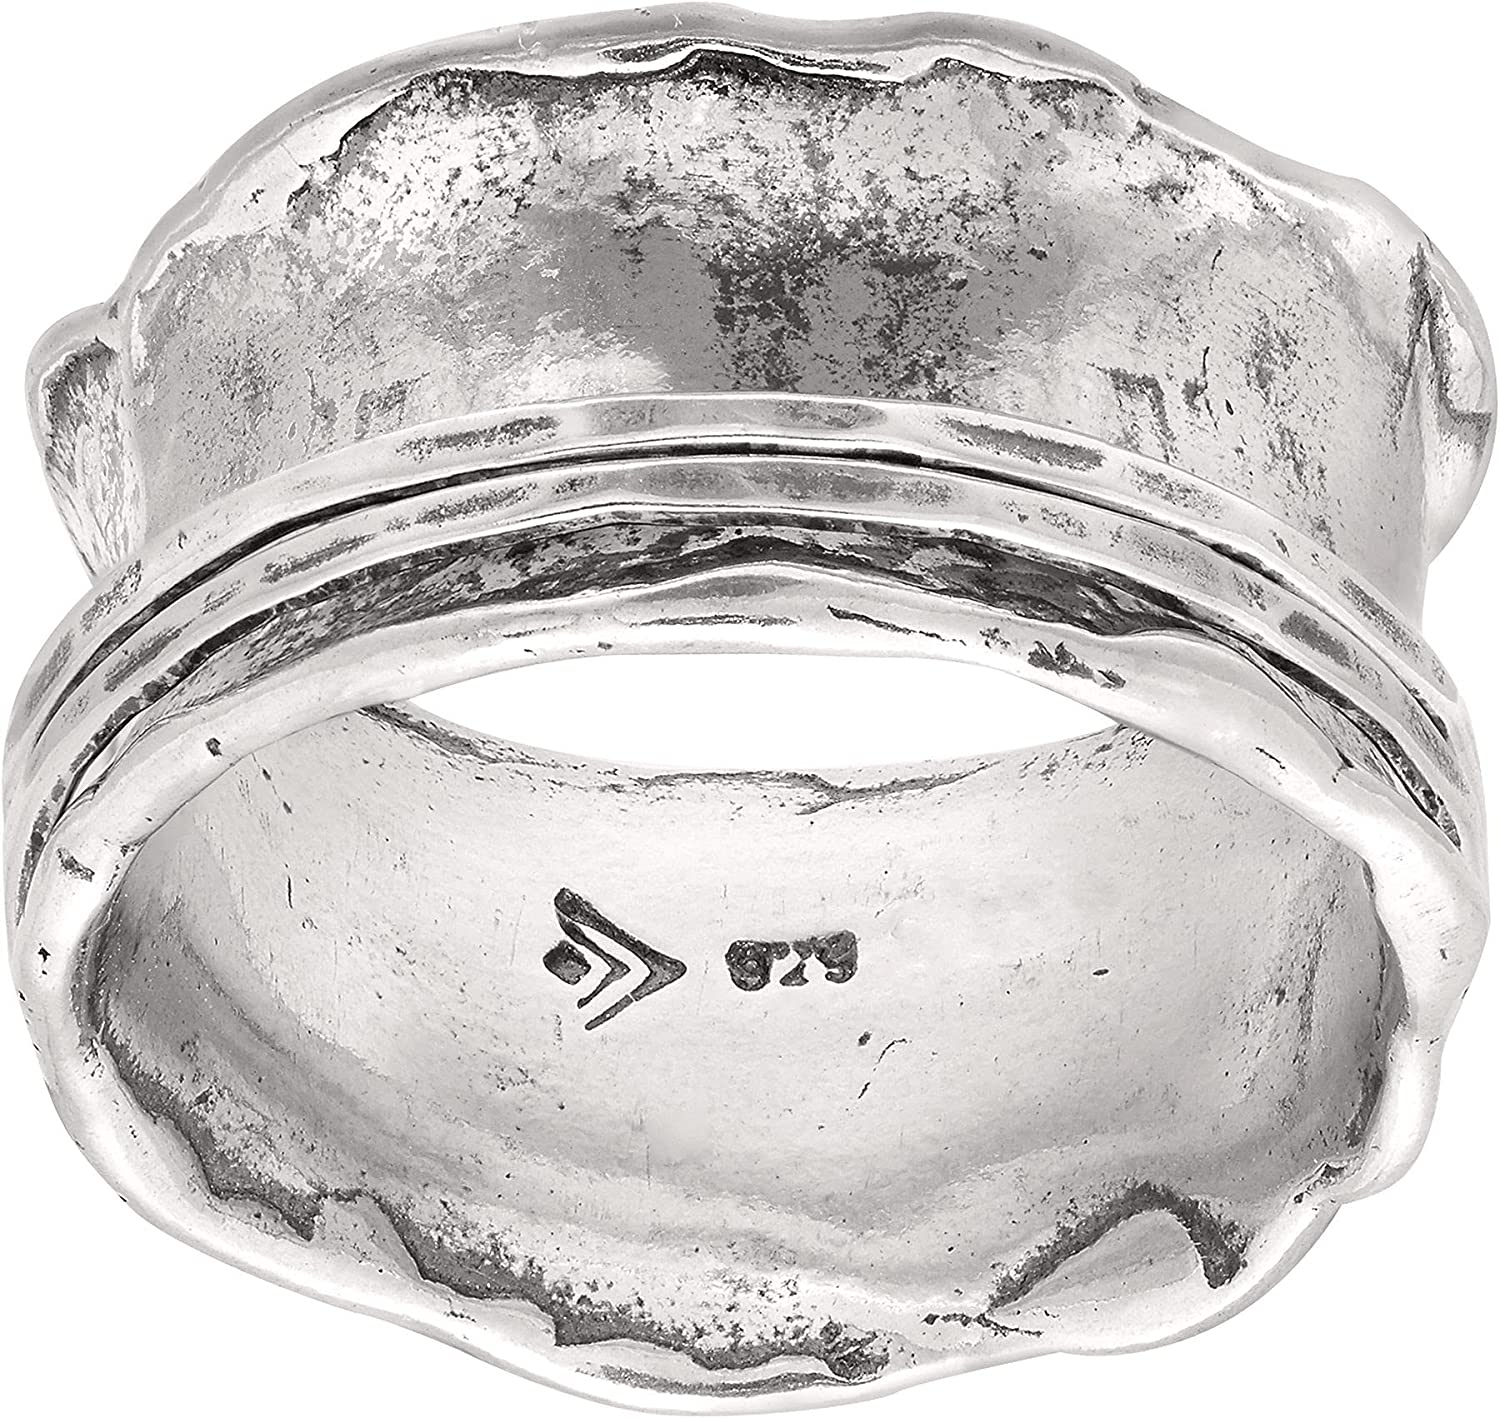 Silpada Selling rankings 'Wave Rider' Scalloped Spinner Ring in Choice Sterling Silver